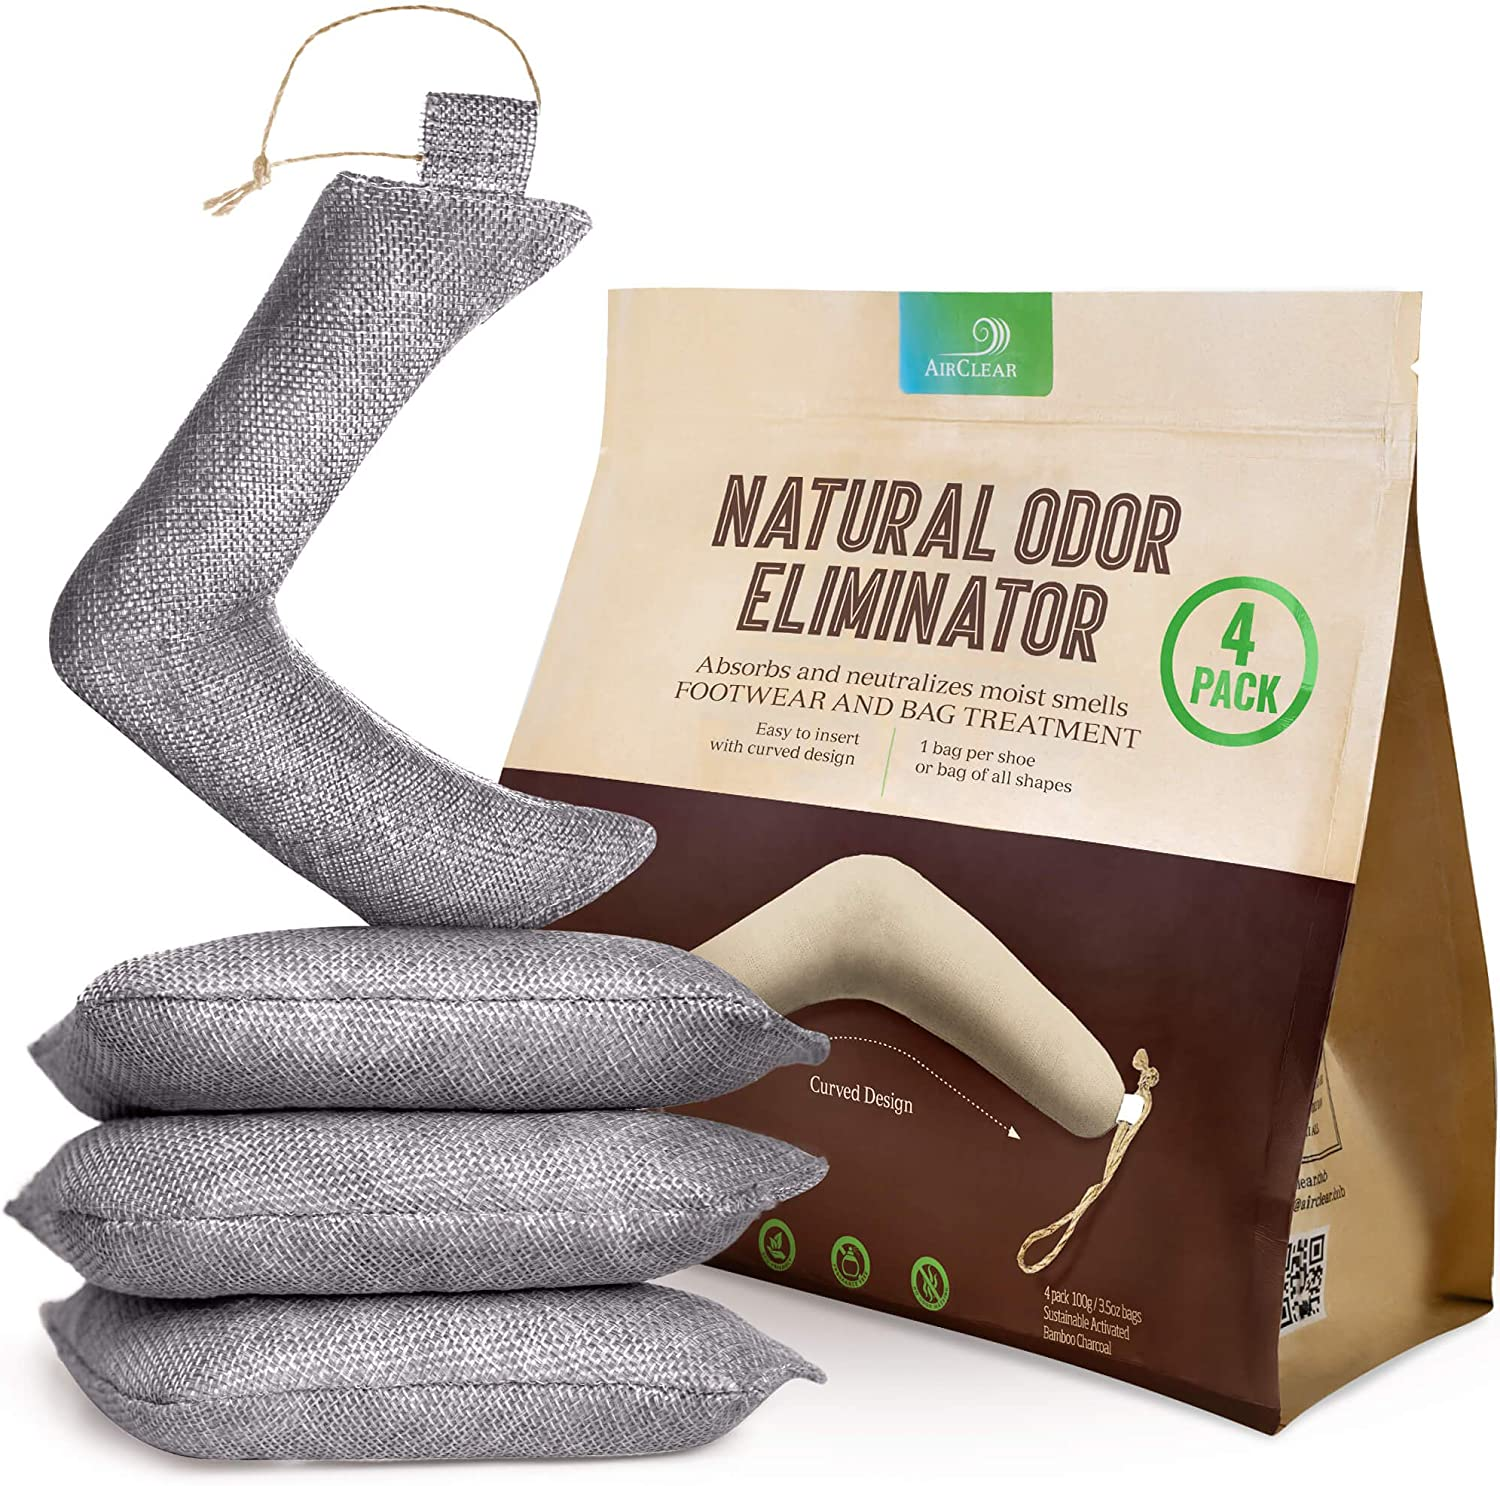 AirClear Bamboo Charcoal Shoe Max 85% OFF Deodorizer Animer and price revision Natural Fresh Ai - Bags